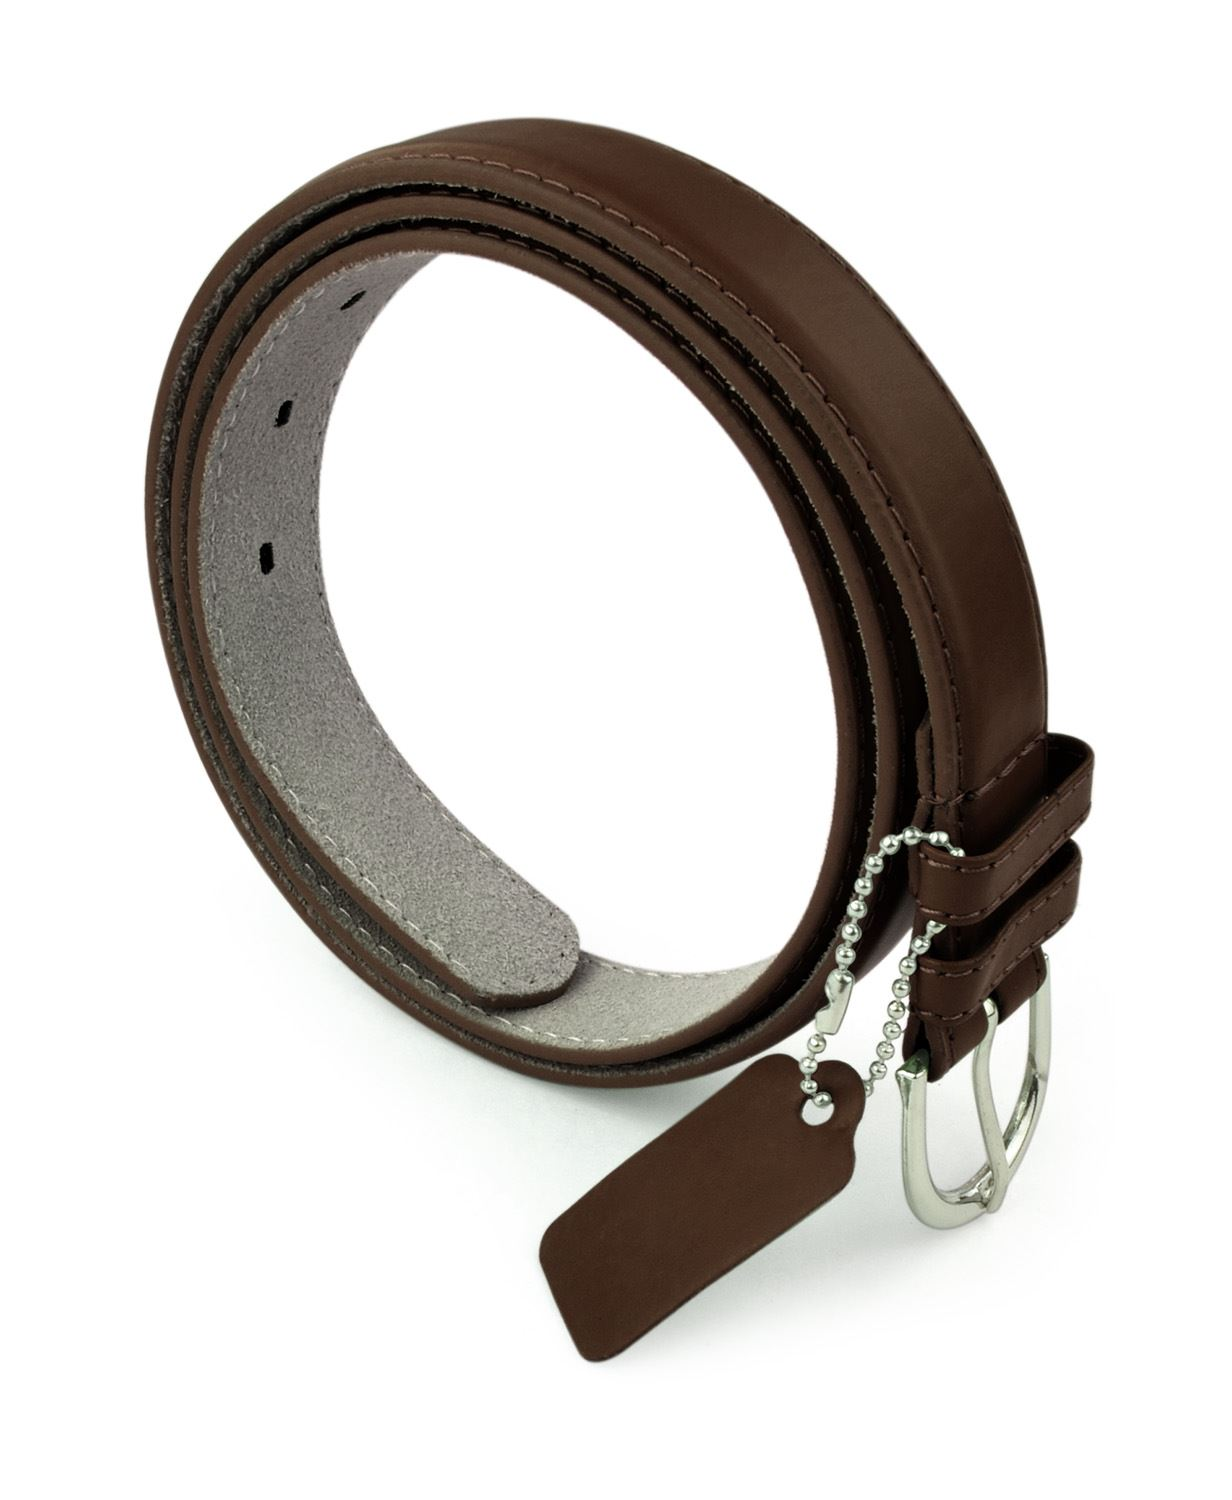 Womens Chic Dress Belt Bonded Leather Polished Buckle - DarkBrown Large